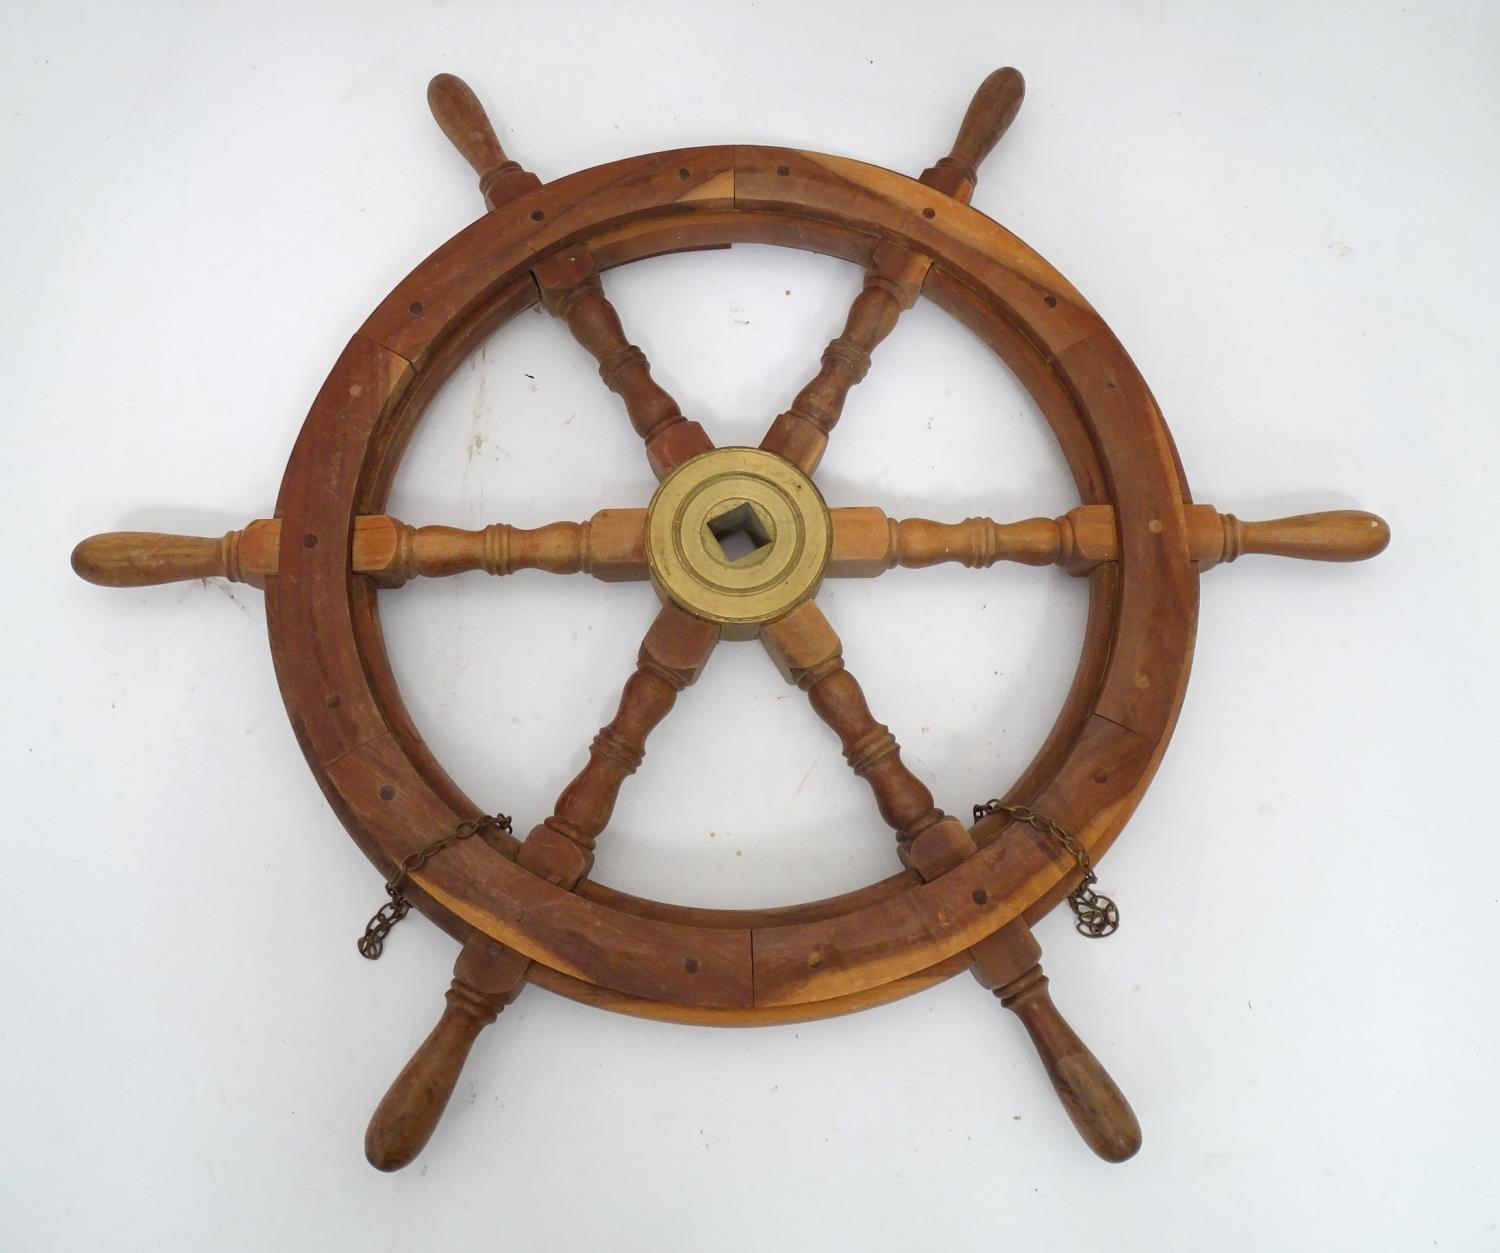 A teak and brass ships wheel Please Note - we do not make reference to the condition of lots